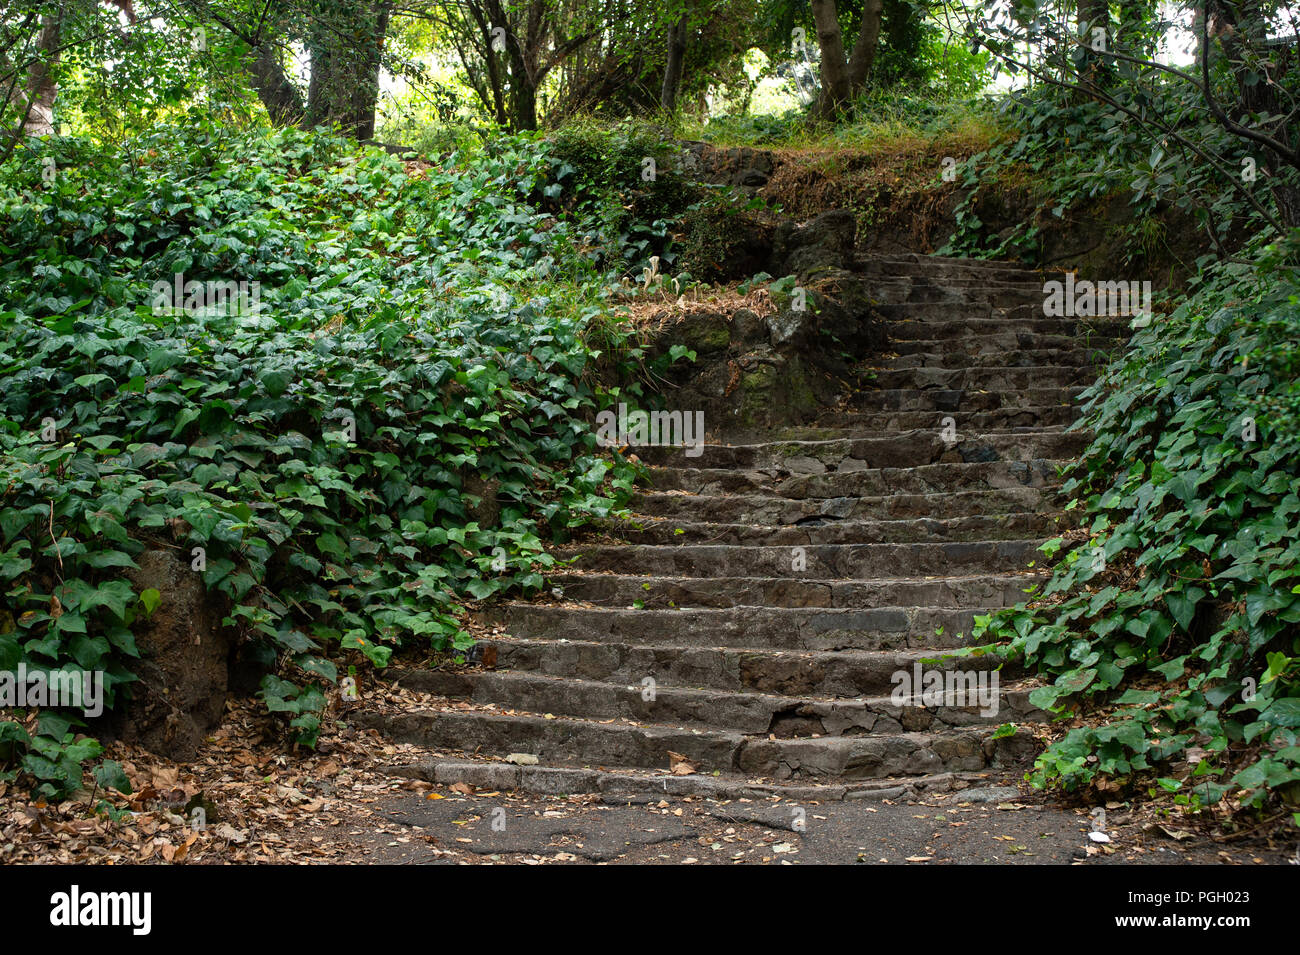 Lush ivy and greenery lines the Short Cut stairs in Berkeley, CA. Stock Photo